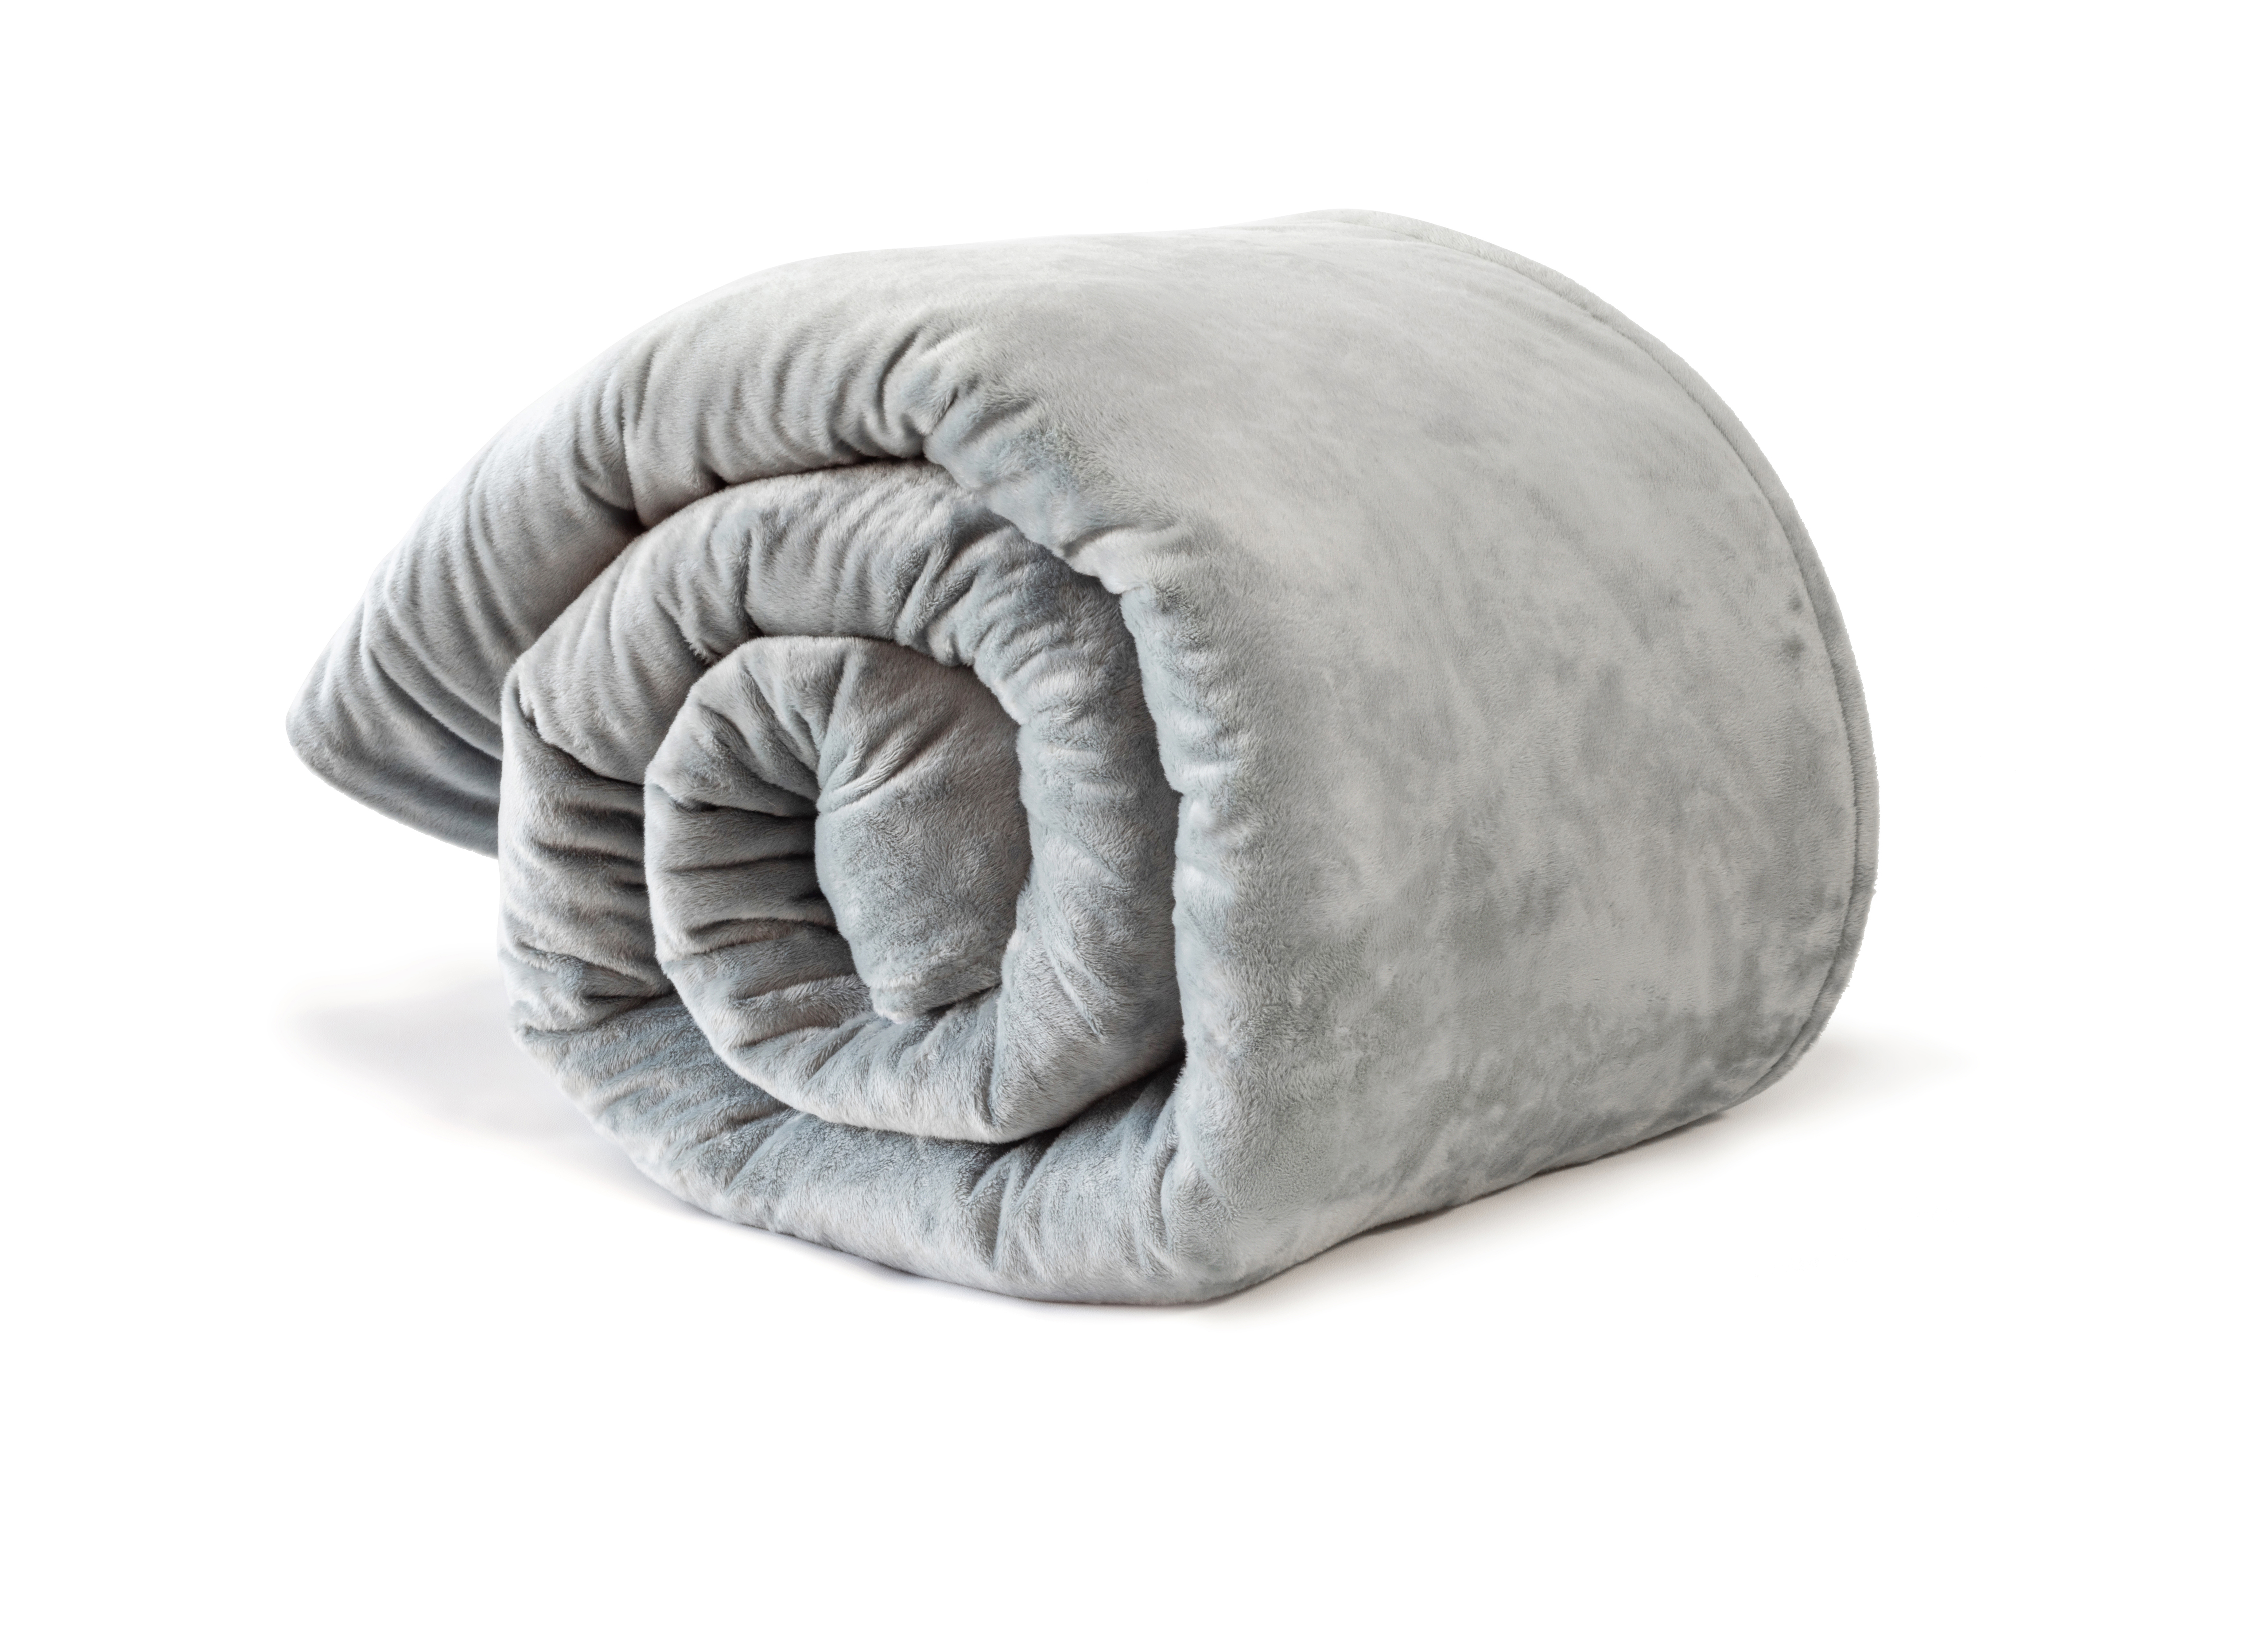 Weighted Blanket For Hot Or Cold Seasons By Moonbow